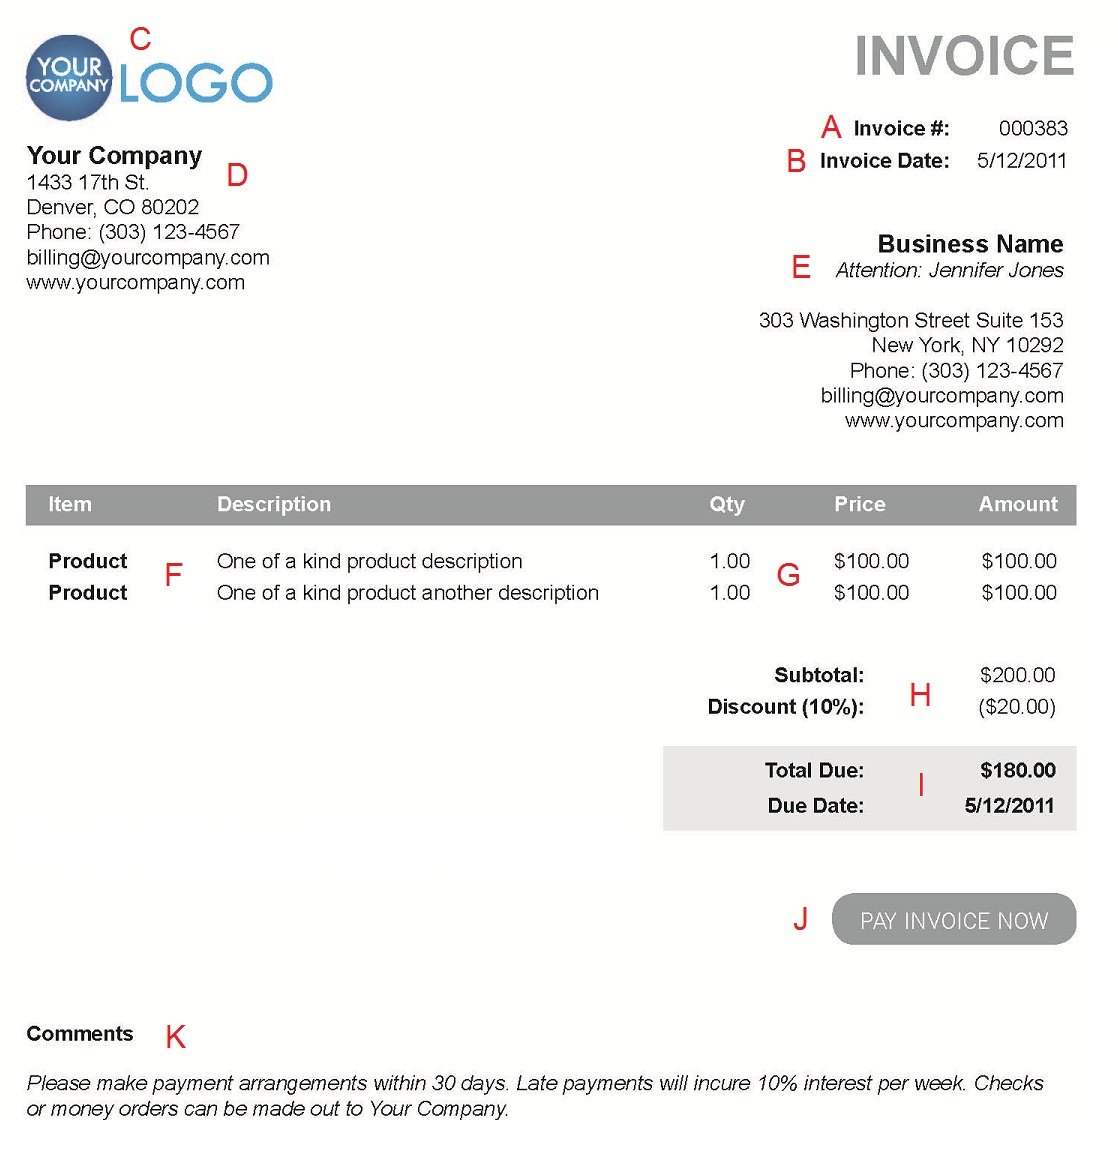 Opposenewapstandardsus  Ravishing The  Different Sections Of An Electronic Payment Invoice With Exciting A  With Delightful Express Invoice Invoicing Software Also Construction Invoicing Software In Addition Quickbooks Invoice Templates Free And Musician Invoice Template As Well As Invoice Word Document Additionally Word  Invoice Template From Paysimplecom With Opposenewapstandardsus  Exciting The  Different Sections Of An Electronic Payment Invoice With Delightful A  And Ravishing Express Invoice Invoicing Software Also Construction Invoicing Software In Addition Quickbooks Invoice Templates Free From Paysimplecom